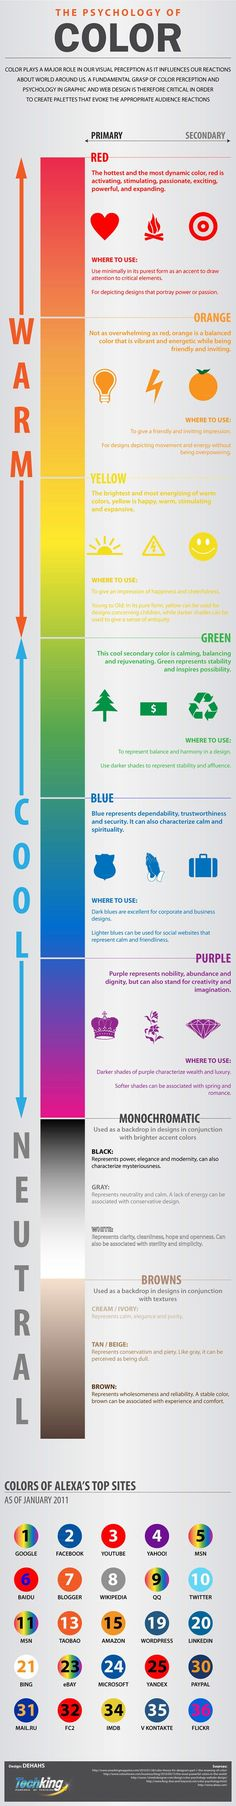 Color-Psychology-web-designers